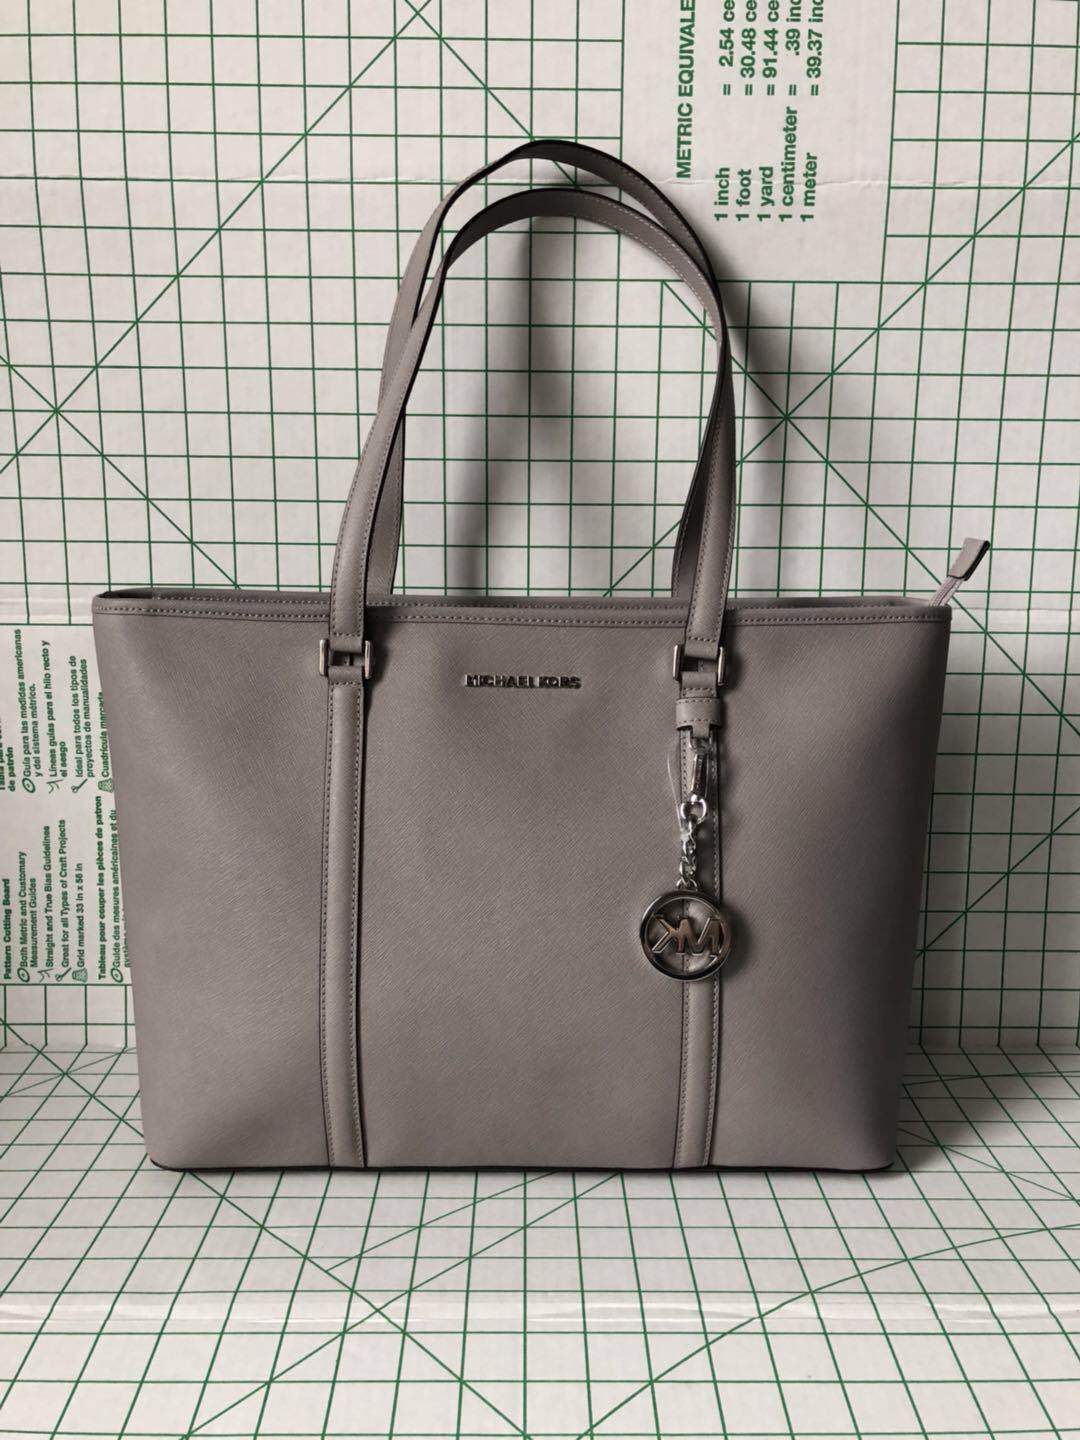 d01ad80a7b26 57. 57. Previous. Michael Kors Sady Large Multifunction Top Zip Tote Pearl  Grey Saffiano Leather B